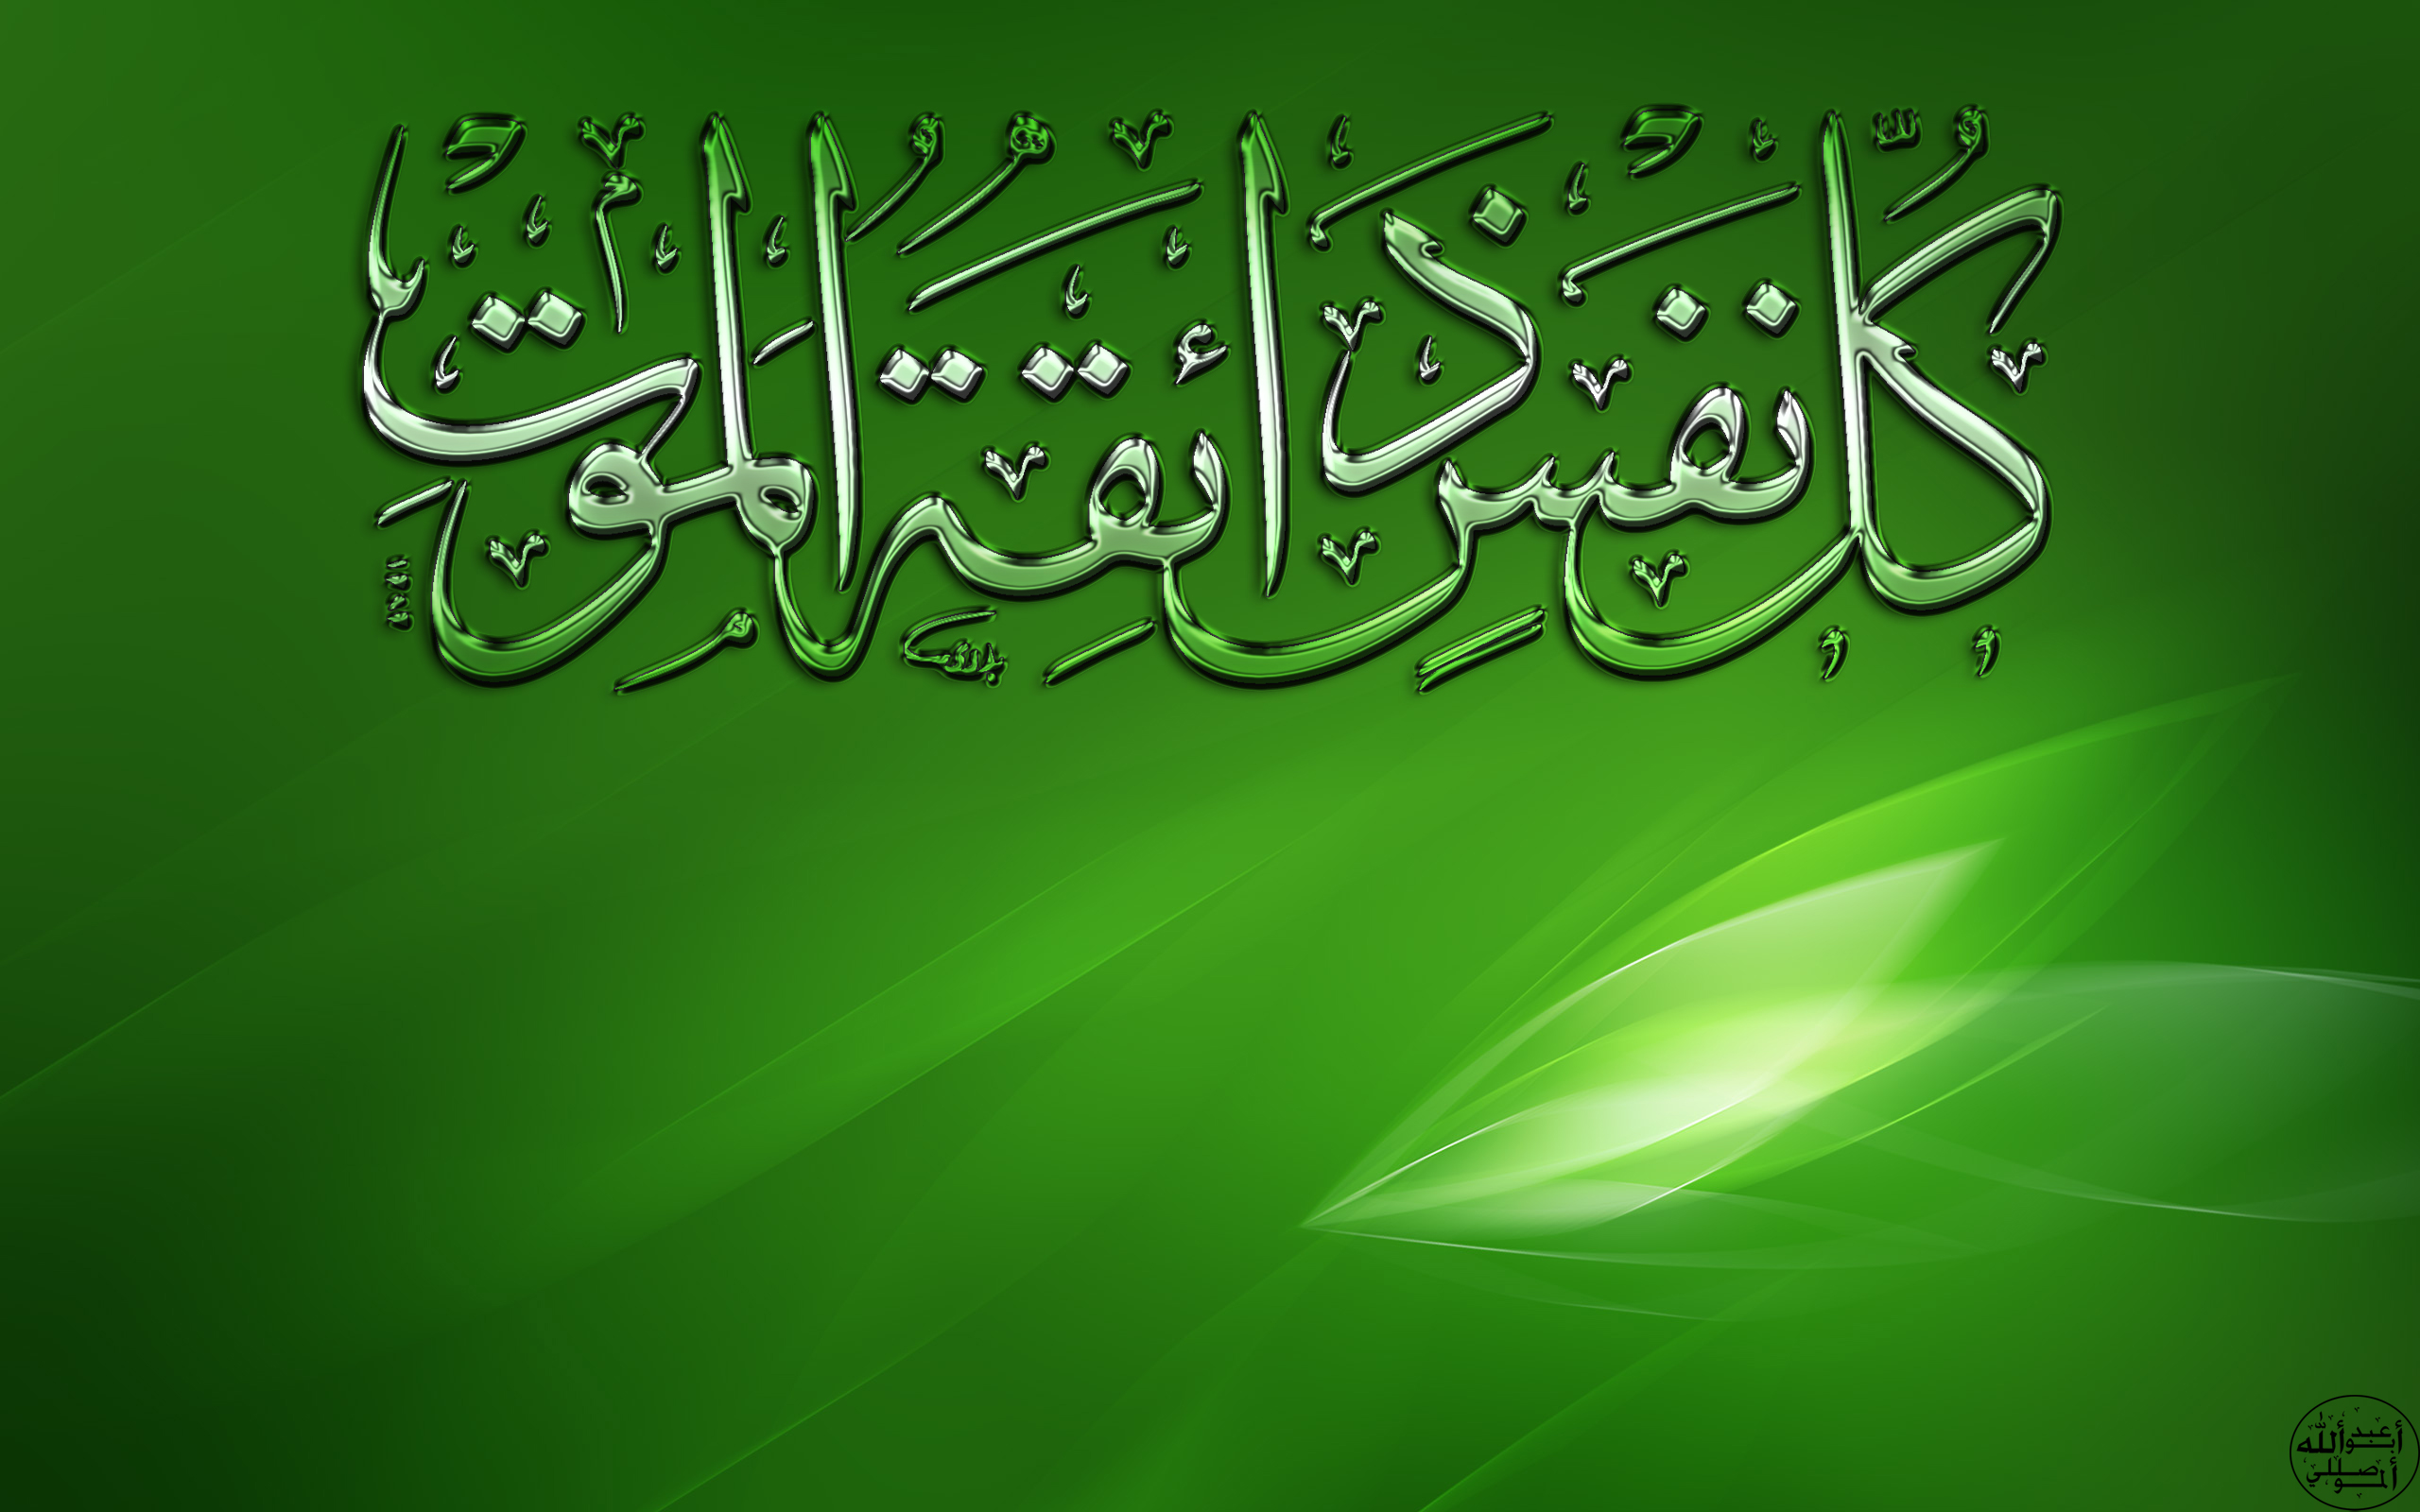 Islamic Calligraphy Hd Desktop Wallpapers 4k Hd